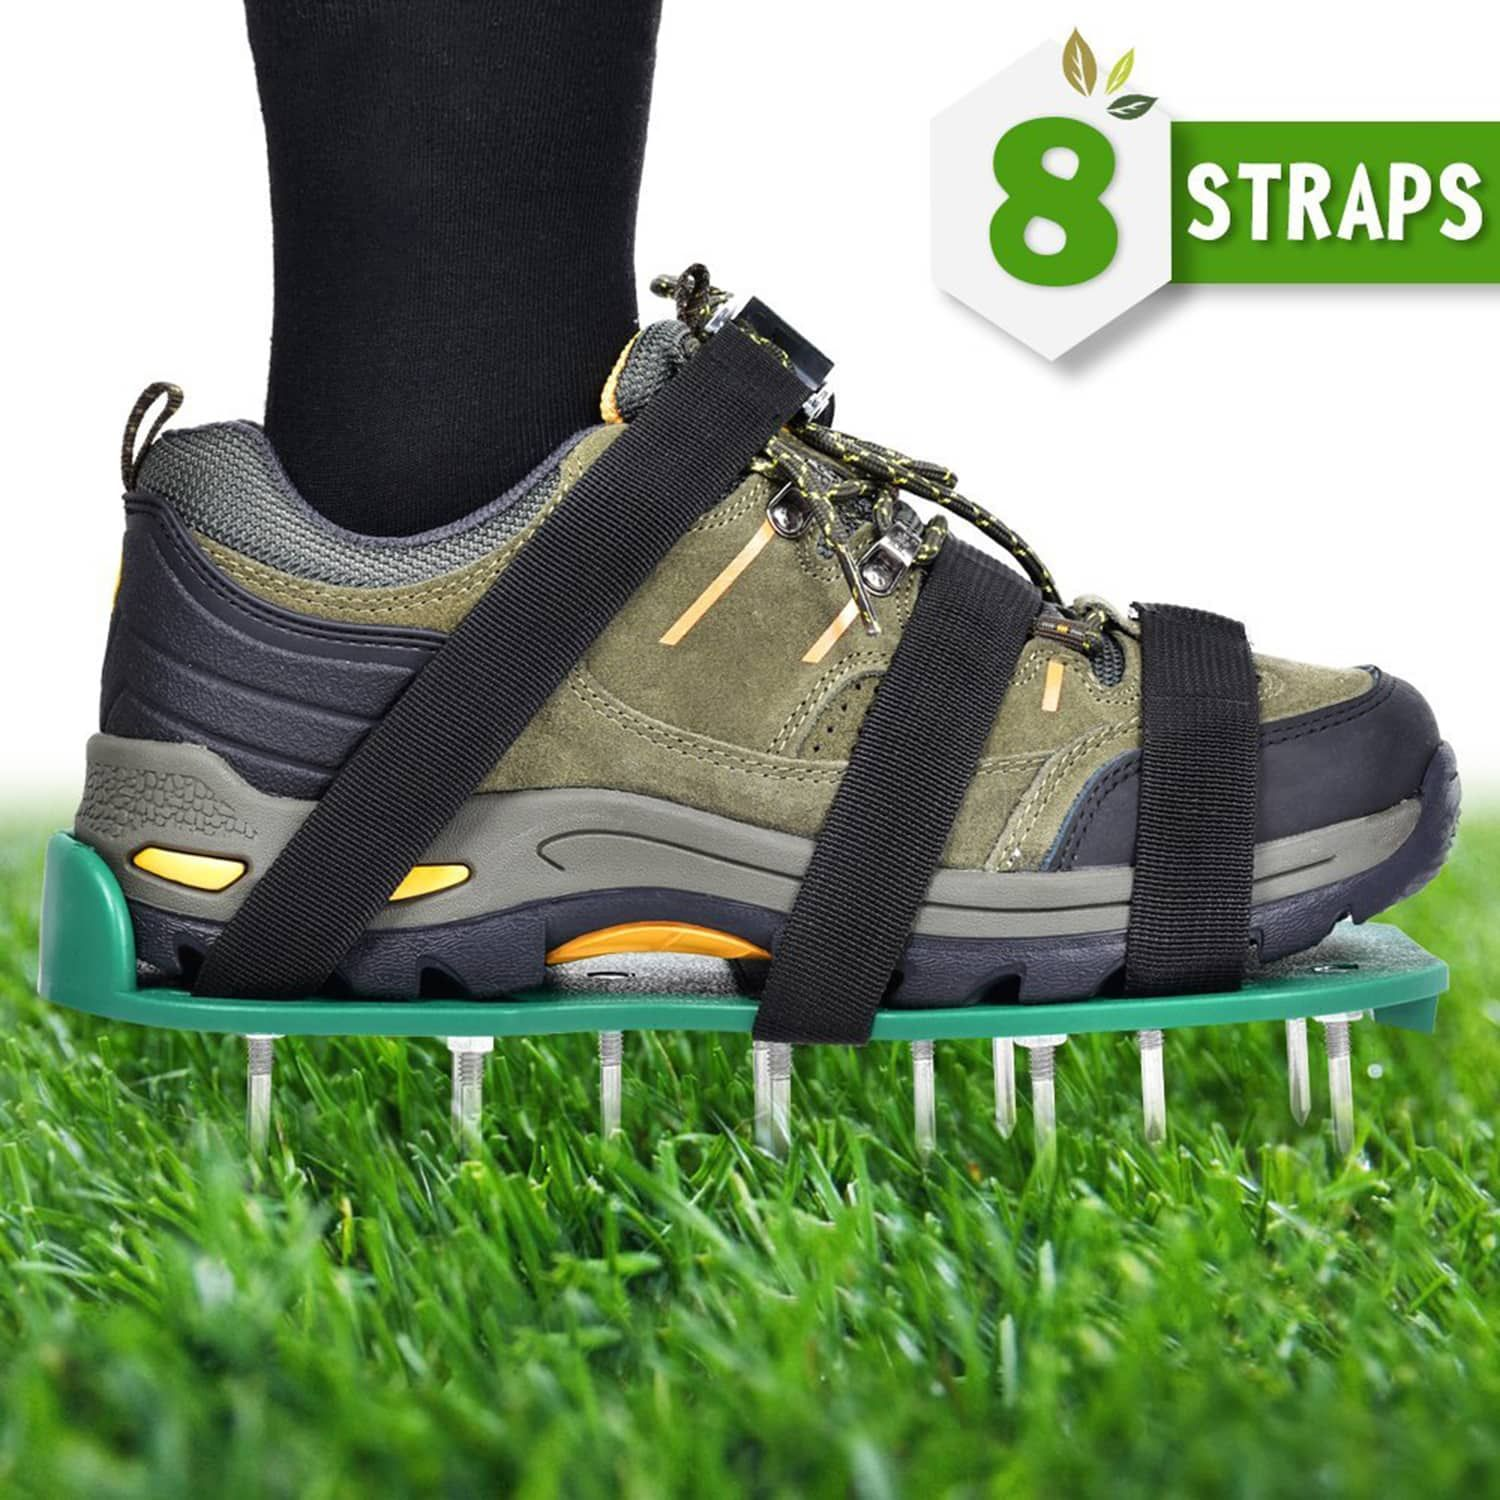 Top 10 Best Lawn Aerator Shoes Reviews In 2020 Best Reviews Guide Aerate Lawn Spike Shoes Aerator